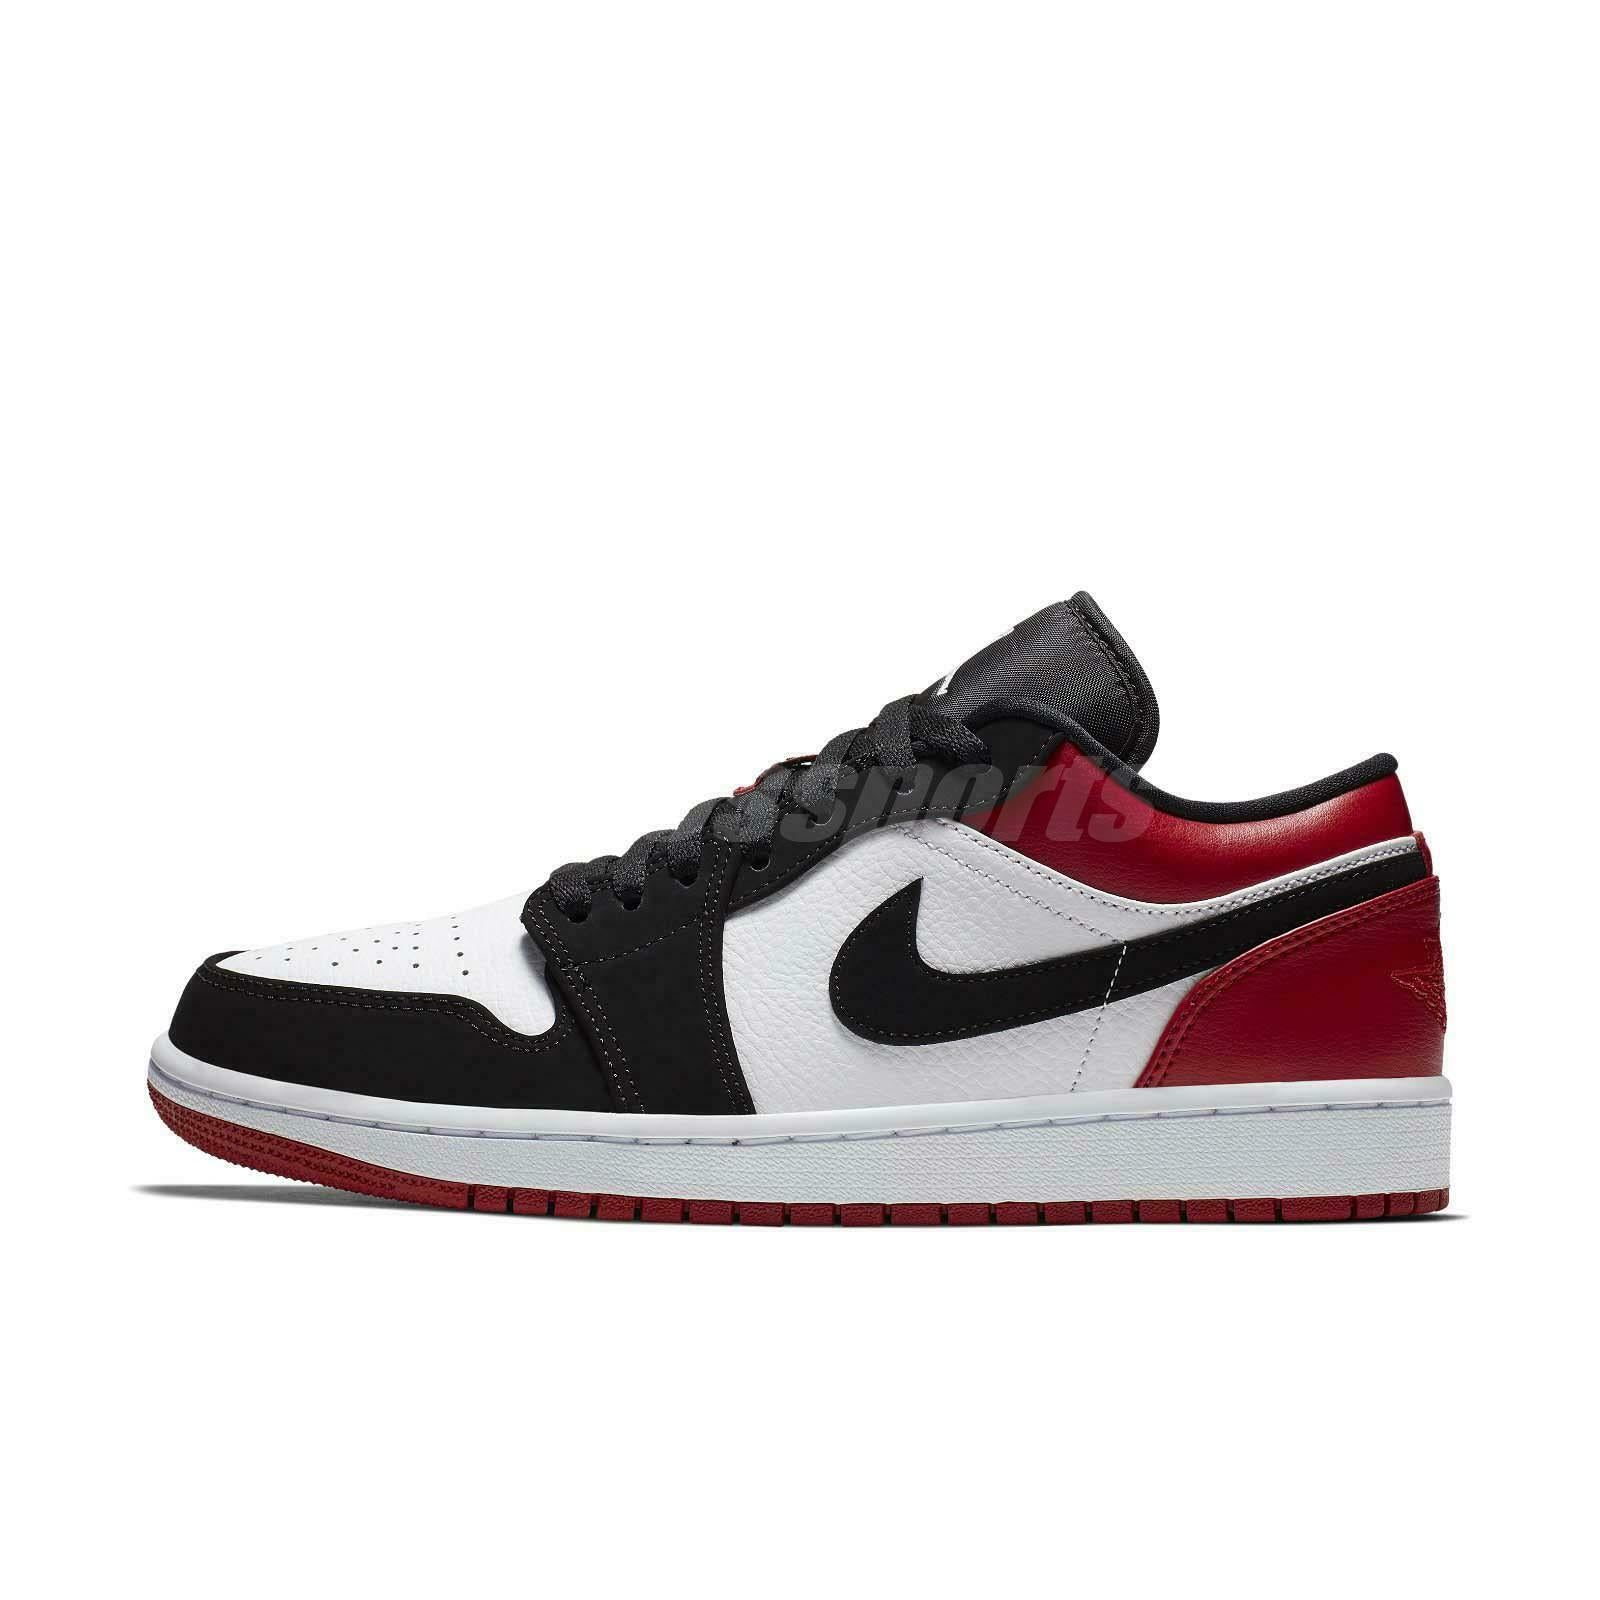 finest selection fcaa8 310d2 ... Load image into Gallery viewer, Nike Air Jordan 1 Low Black Toe White  Black Gym ...